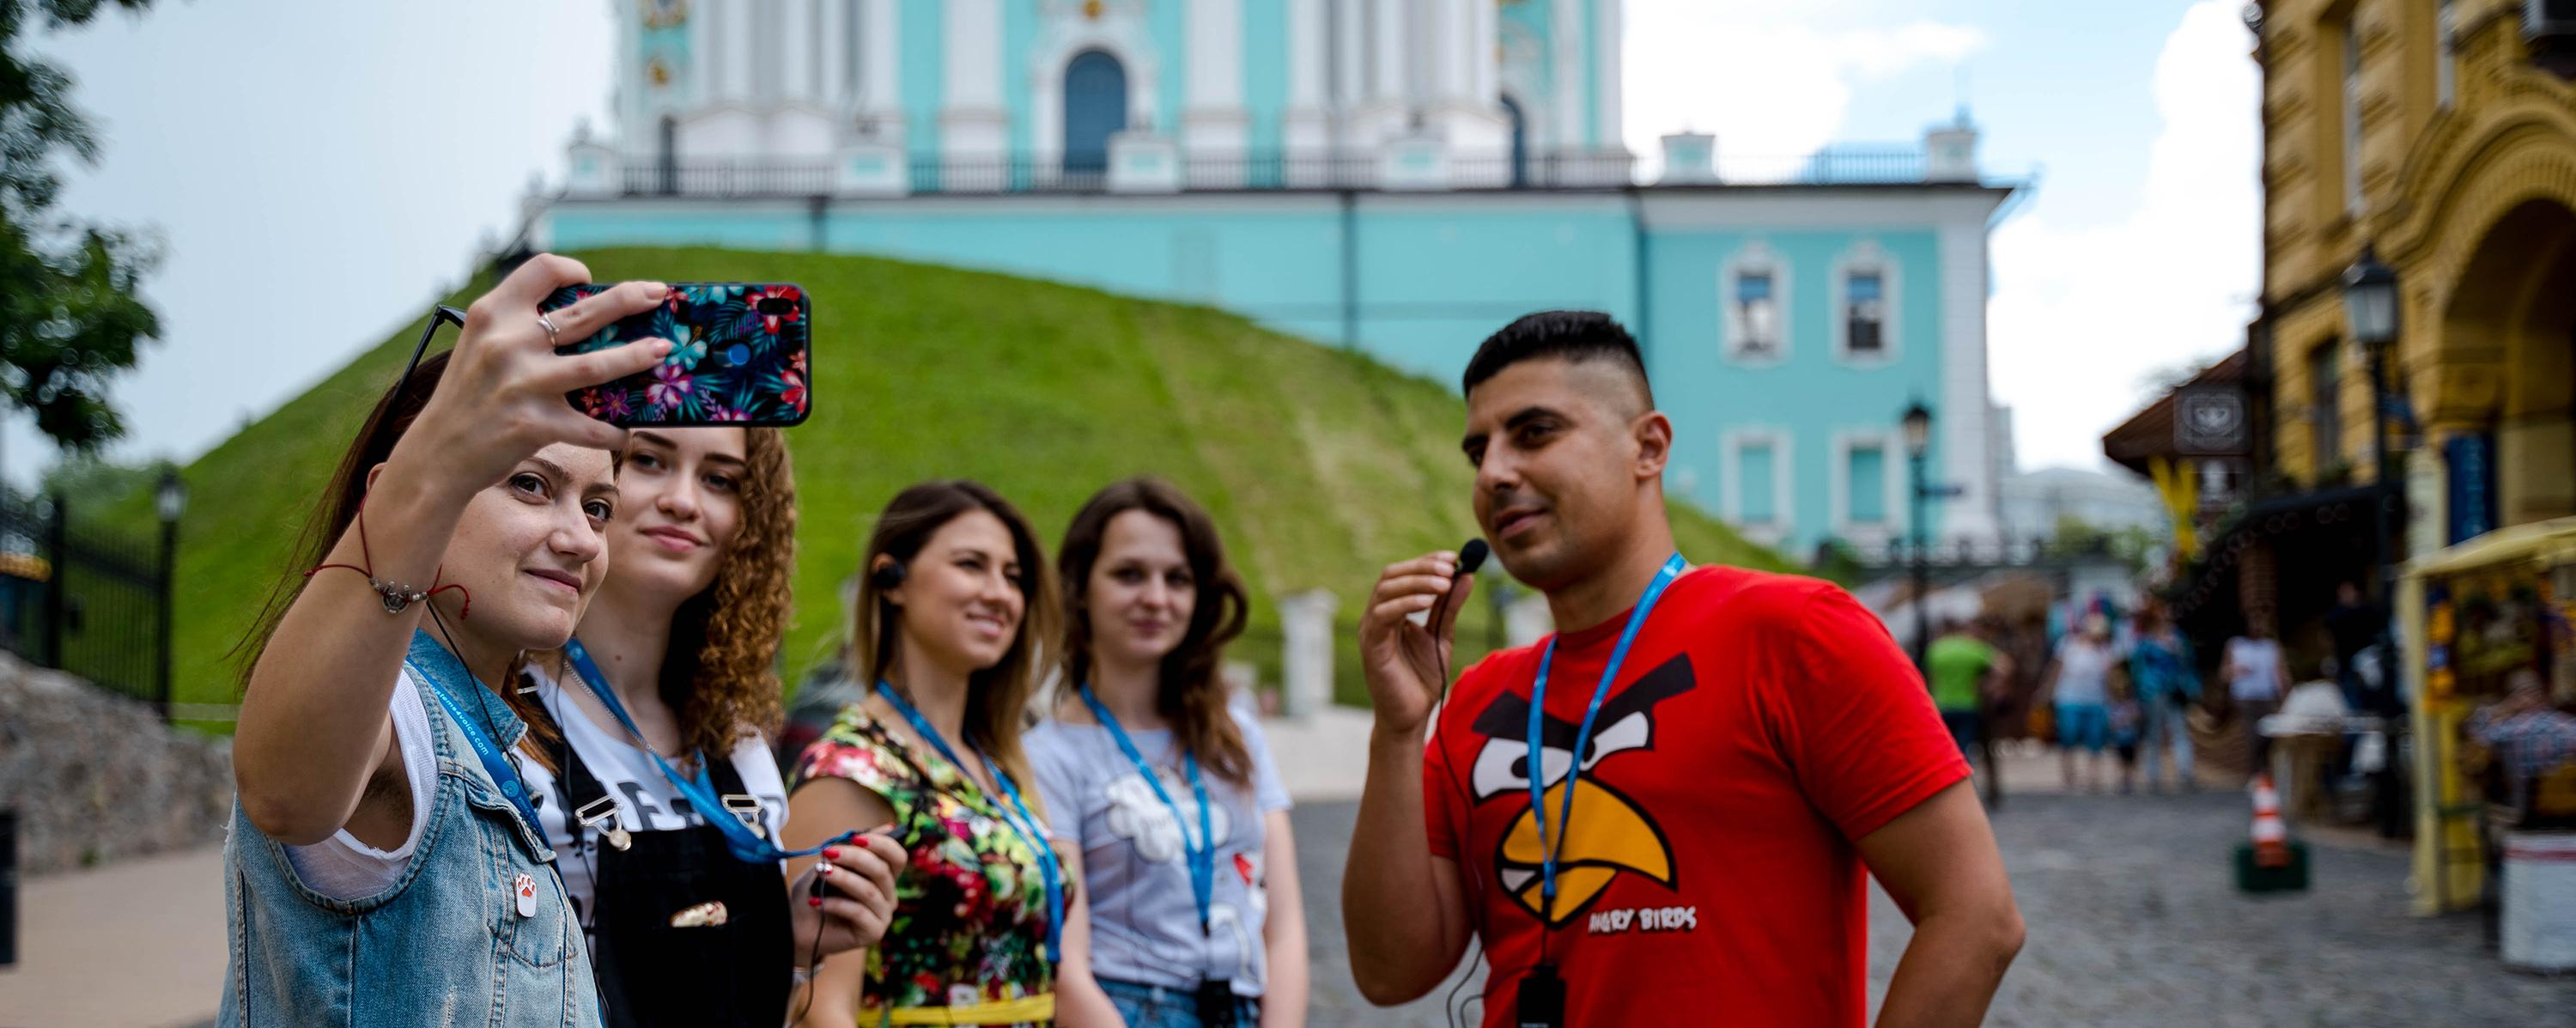 tourist_group_with_audio_guides